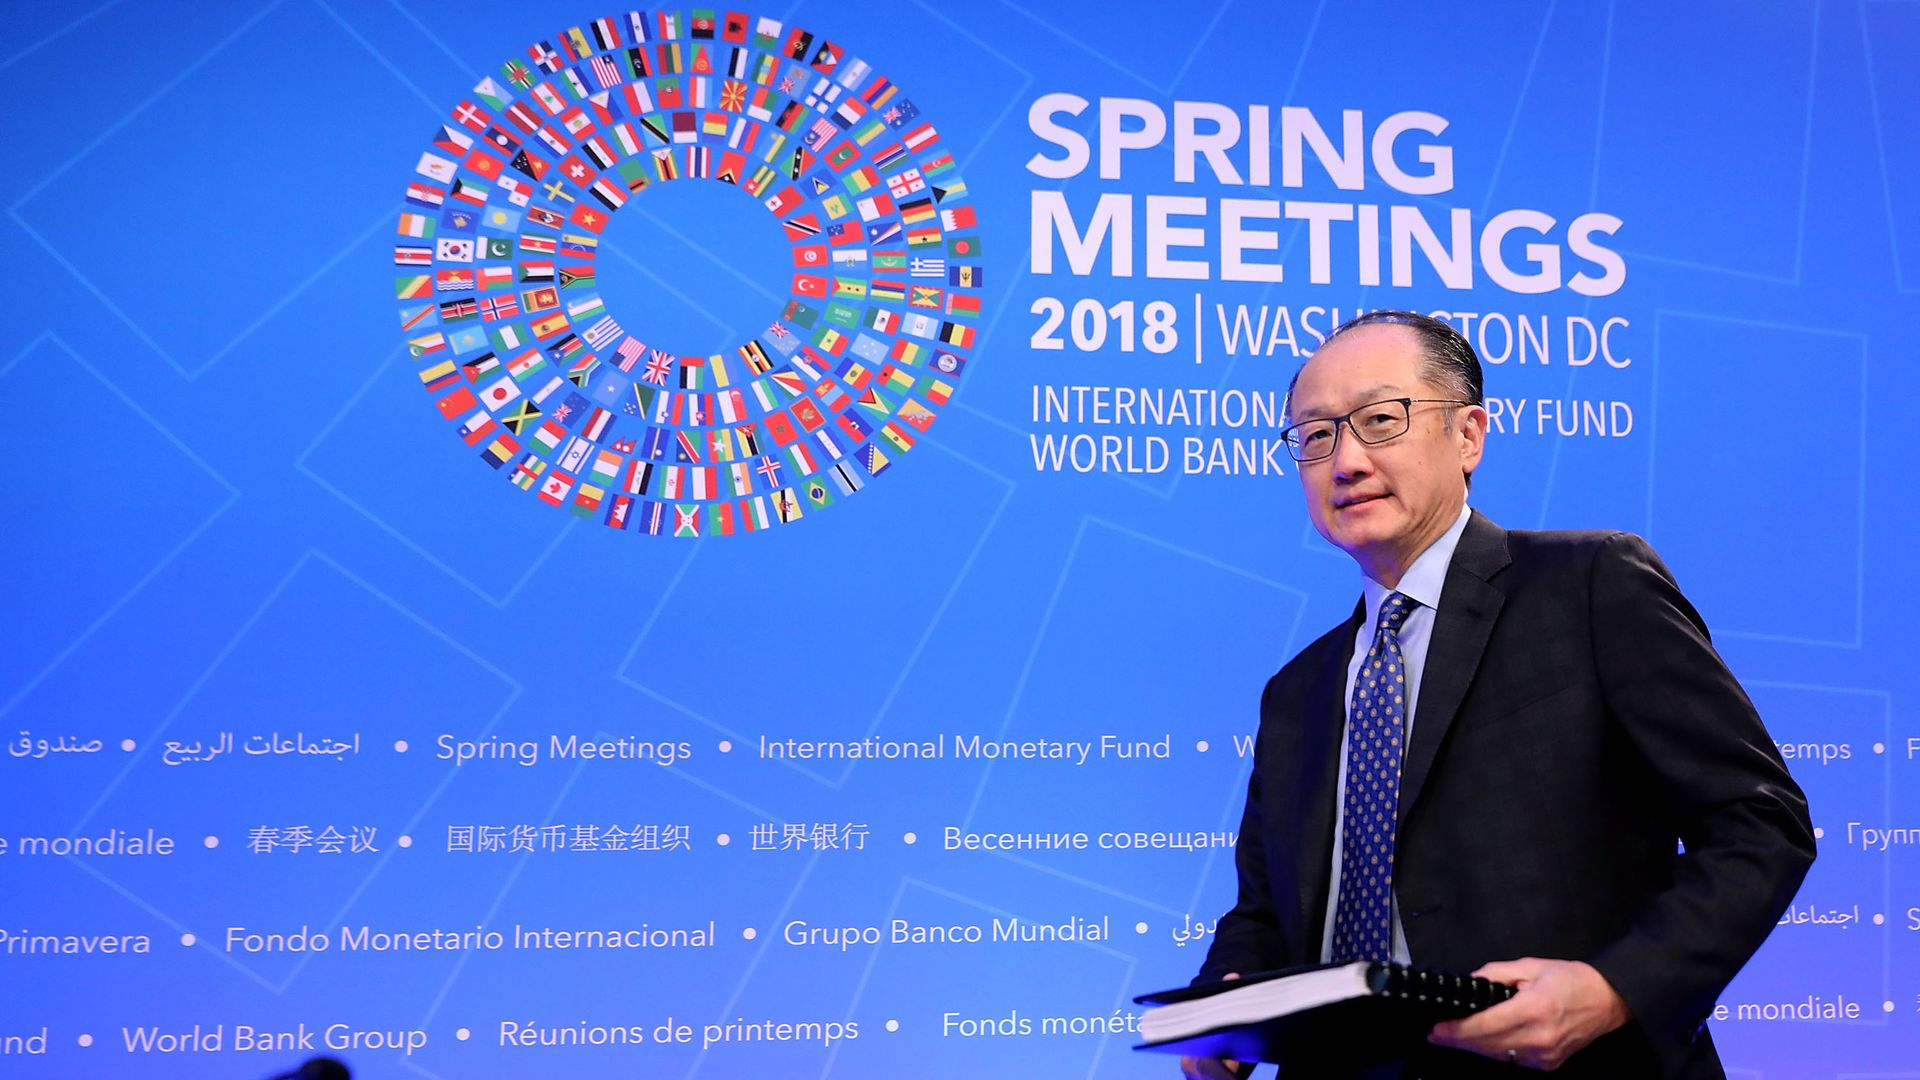 World Bank President Jim Yong Kim arrives for a news conference at International Monetary Fund Headquarters April 19, 2018 in Washington, DC.